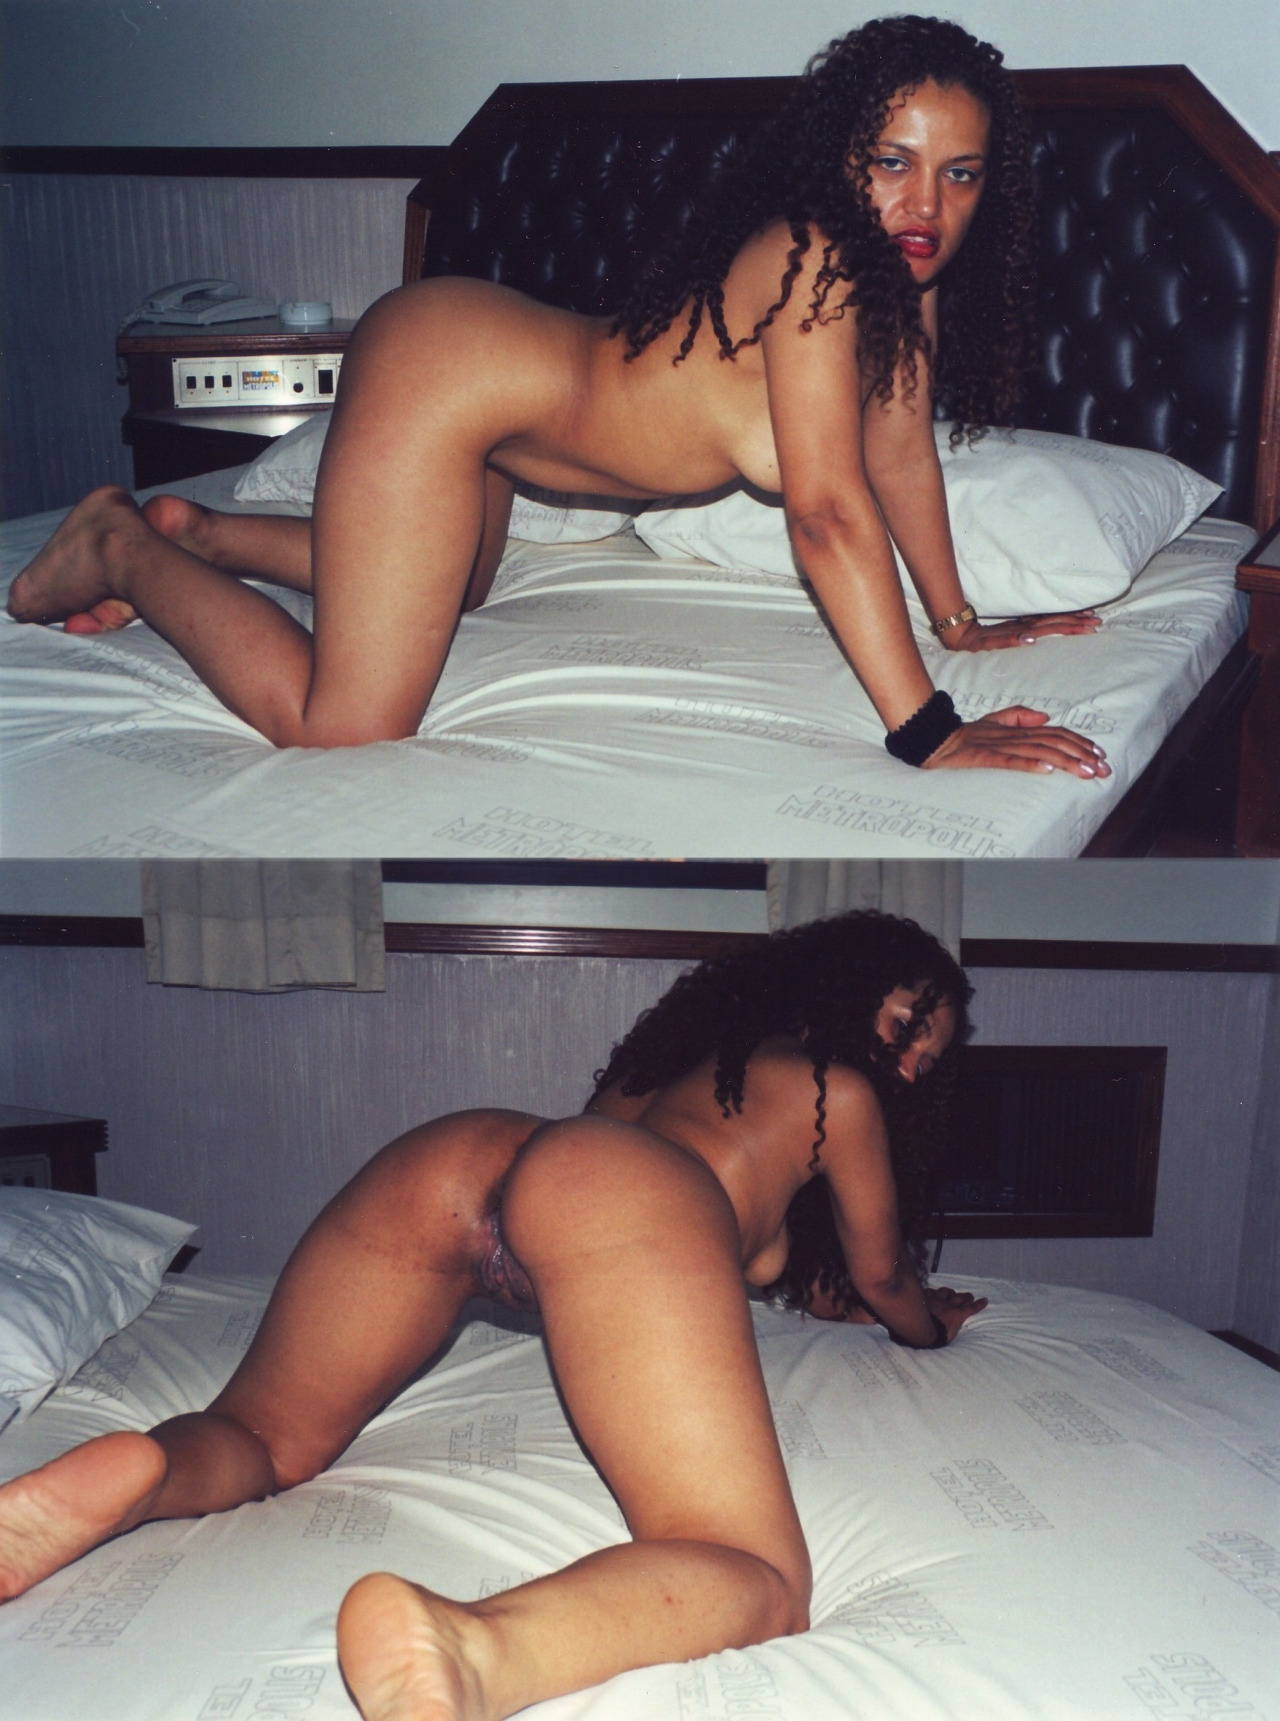 this curly hair black chick with tight vagina really kno #Anabokete #slut #bitch #readytofuck #brazilian #brazilianputa #brazilianvagabunda #readytouse #readytobefucked #readytobeused #readytobeawhore #hotmil